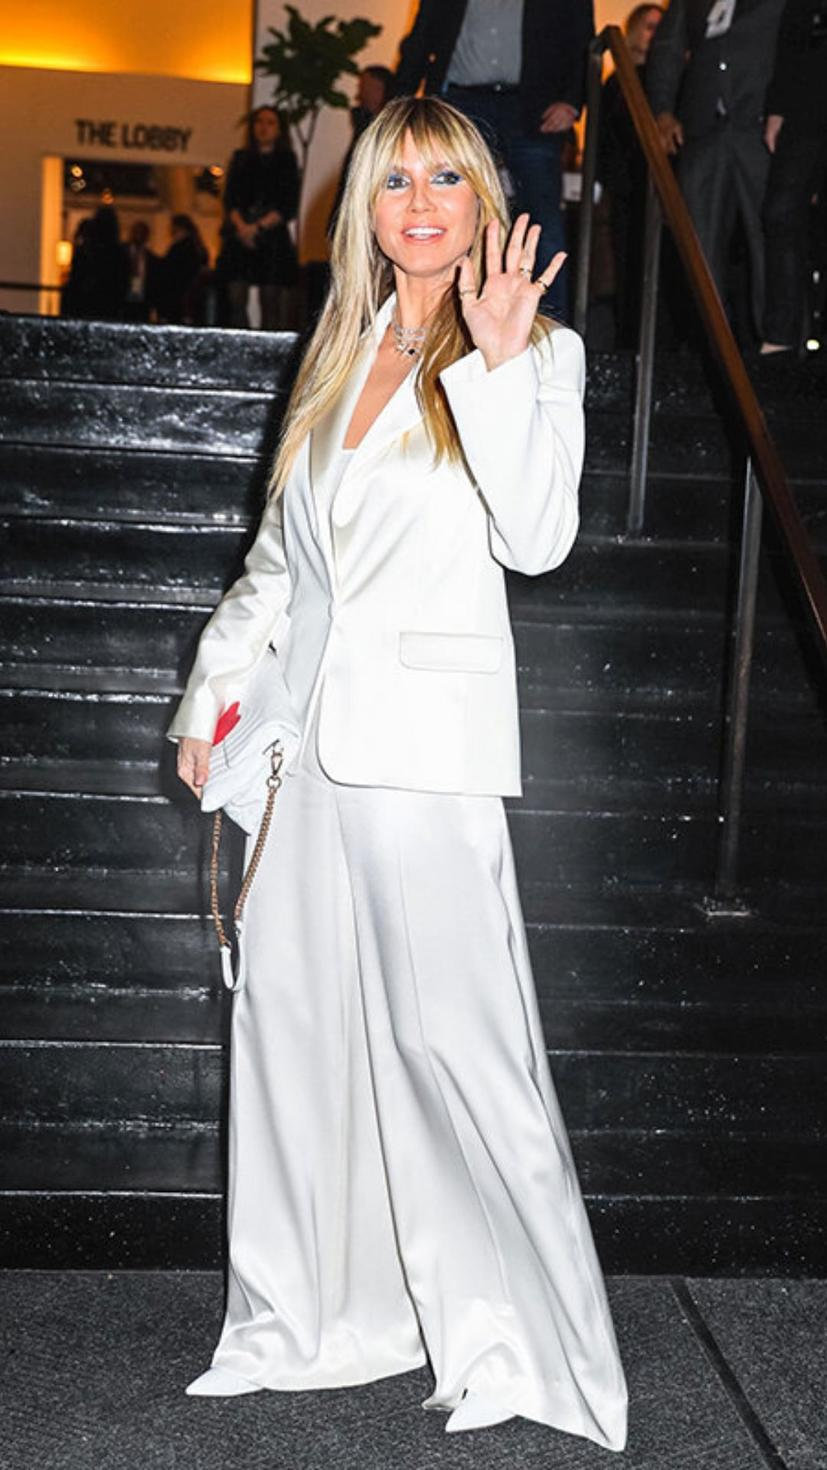 Heidi Klum at the Christian Siriano show wearing suit and heels by Christian Siriano